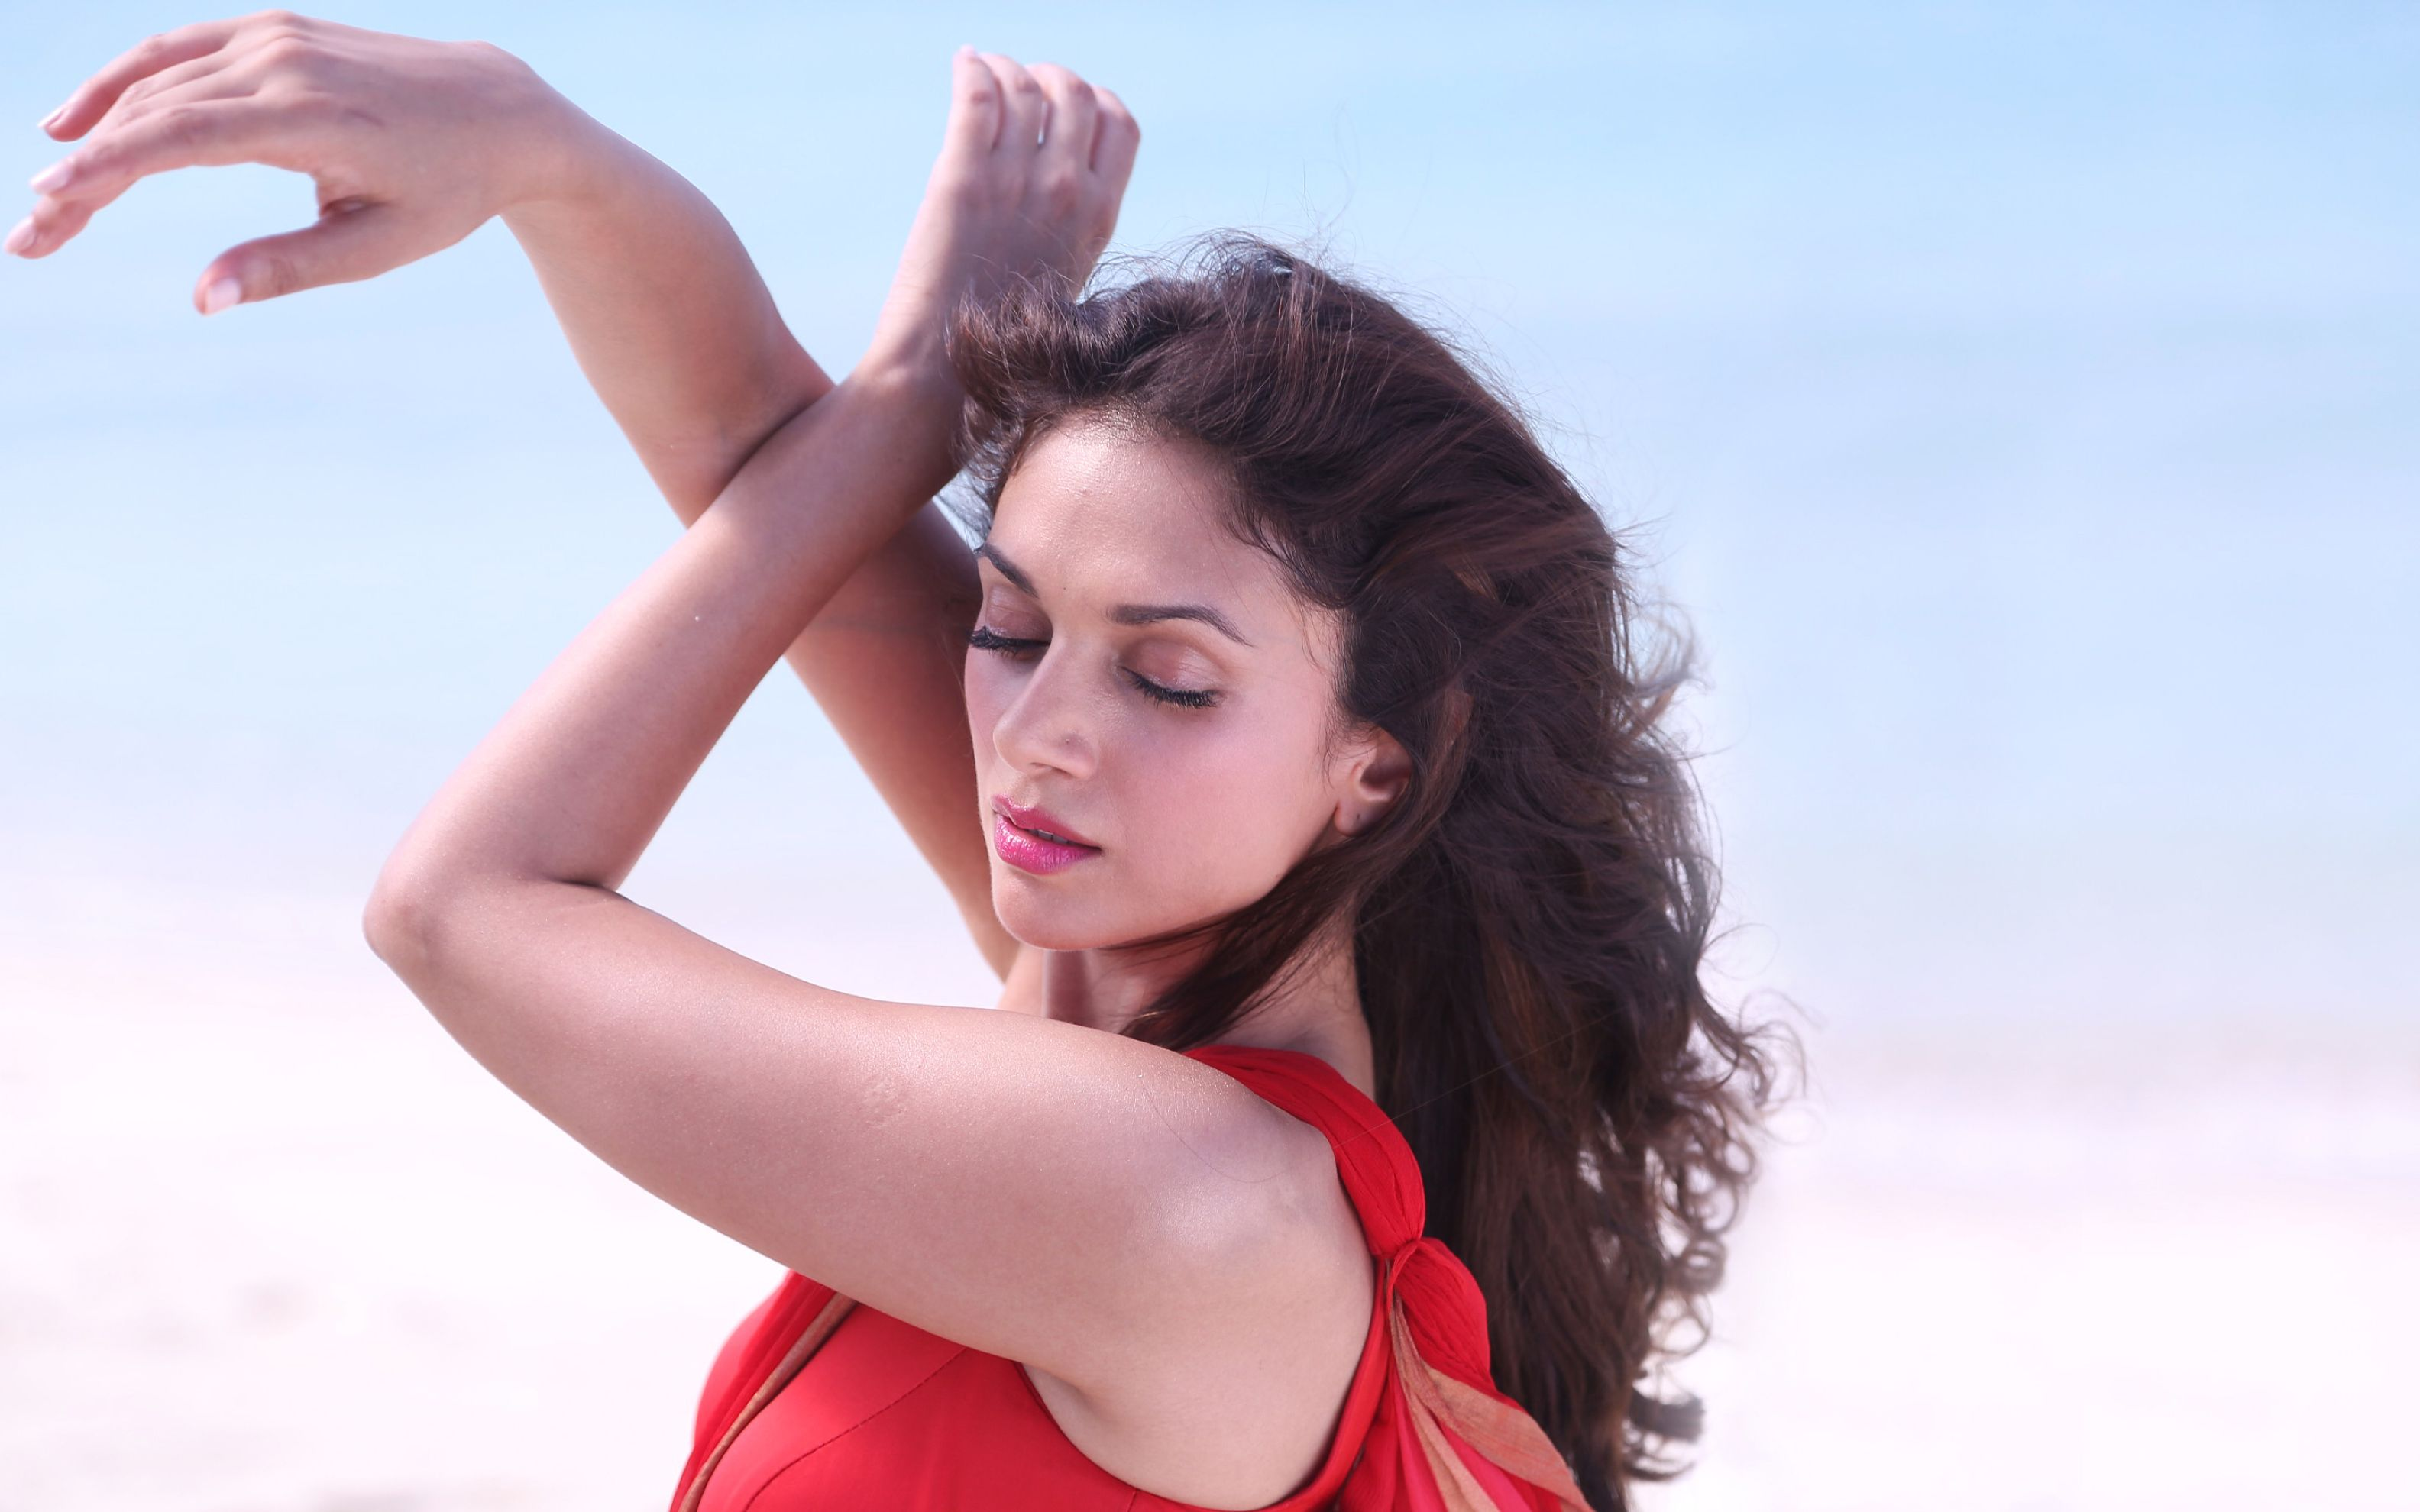 Aditi Rao Hydari 3 Wide Wallpaper: Desktop HD Wallpaper - Download ...